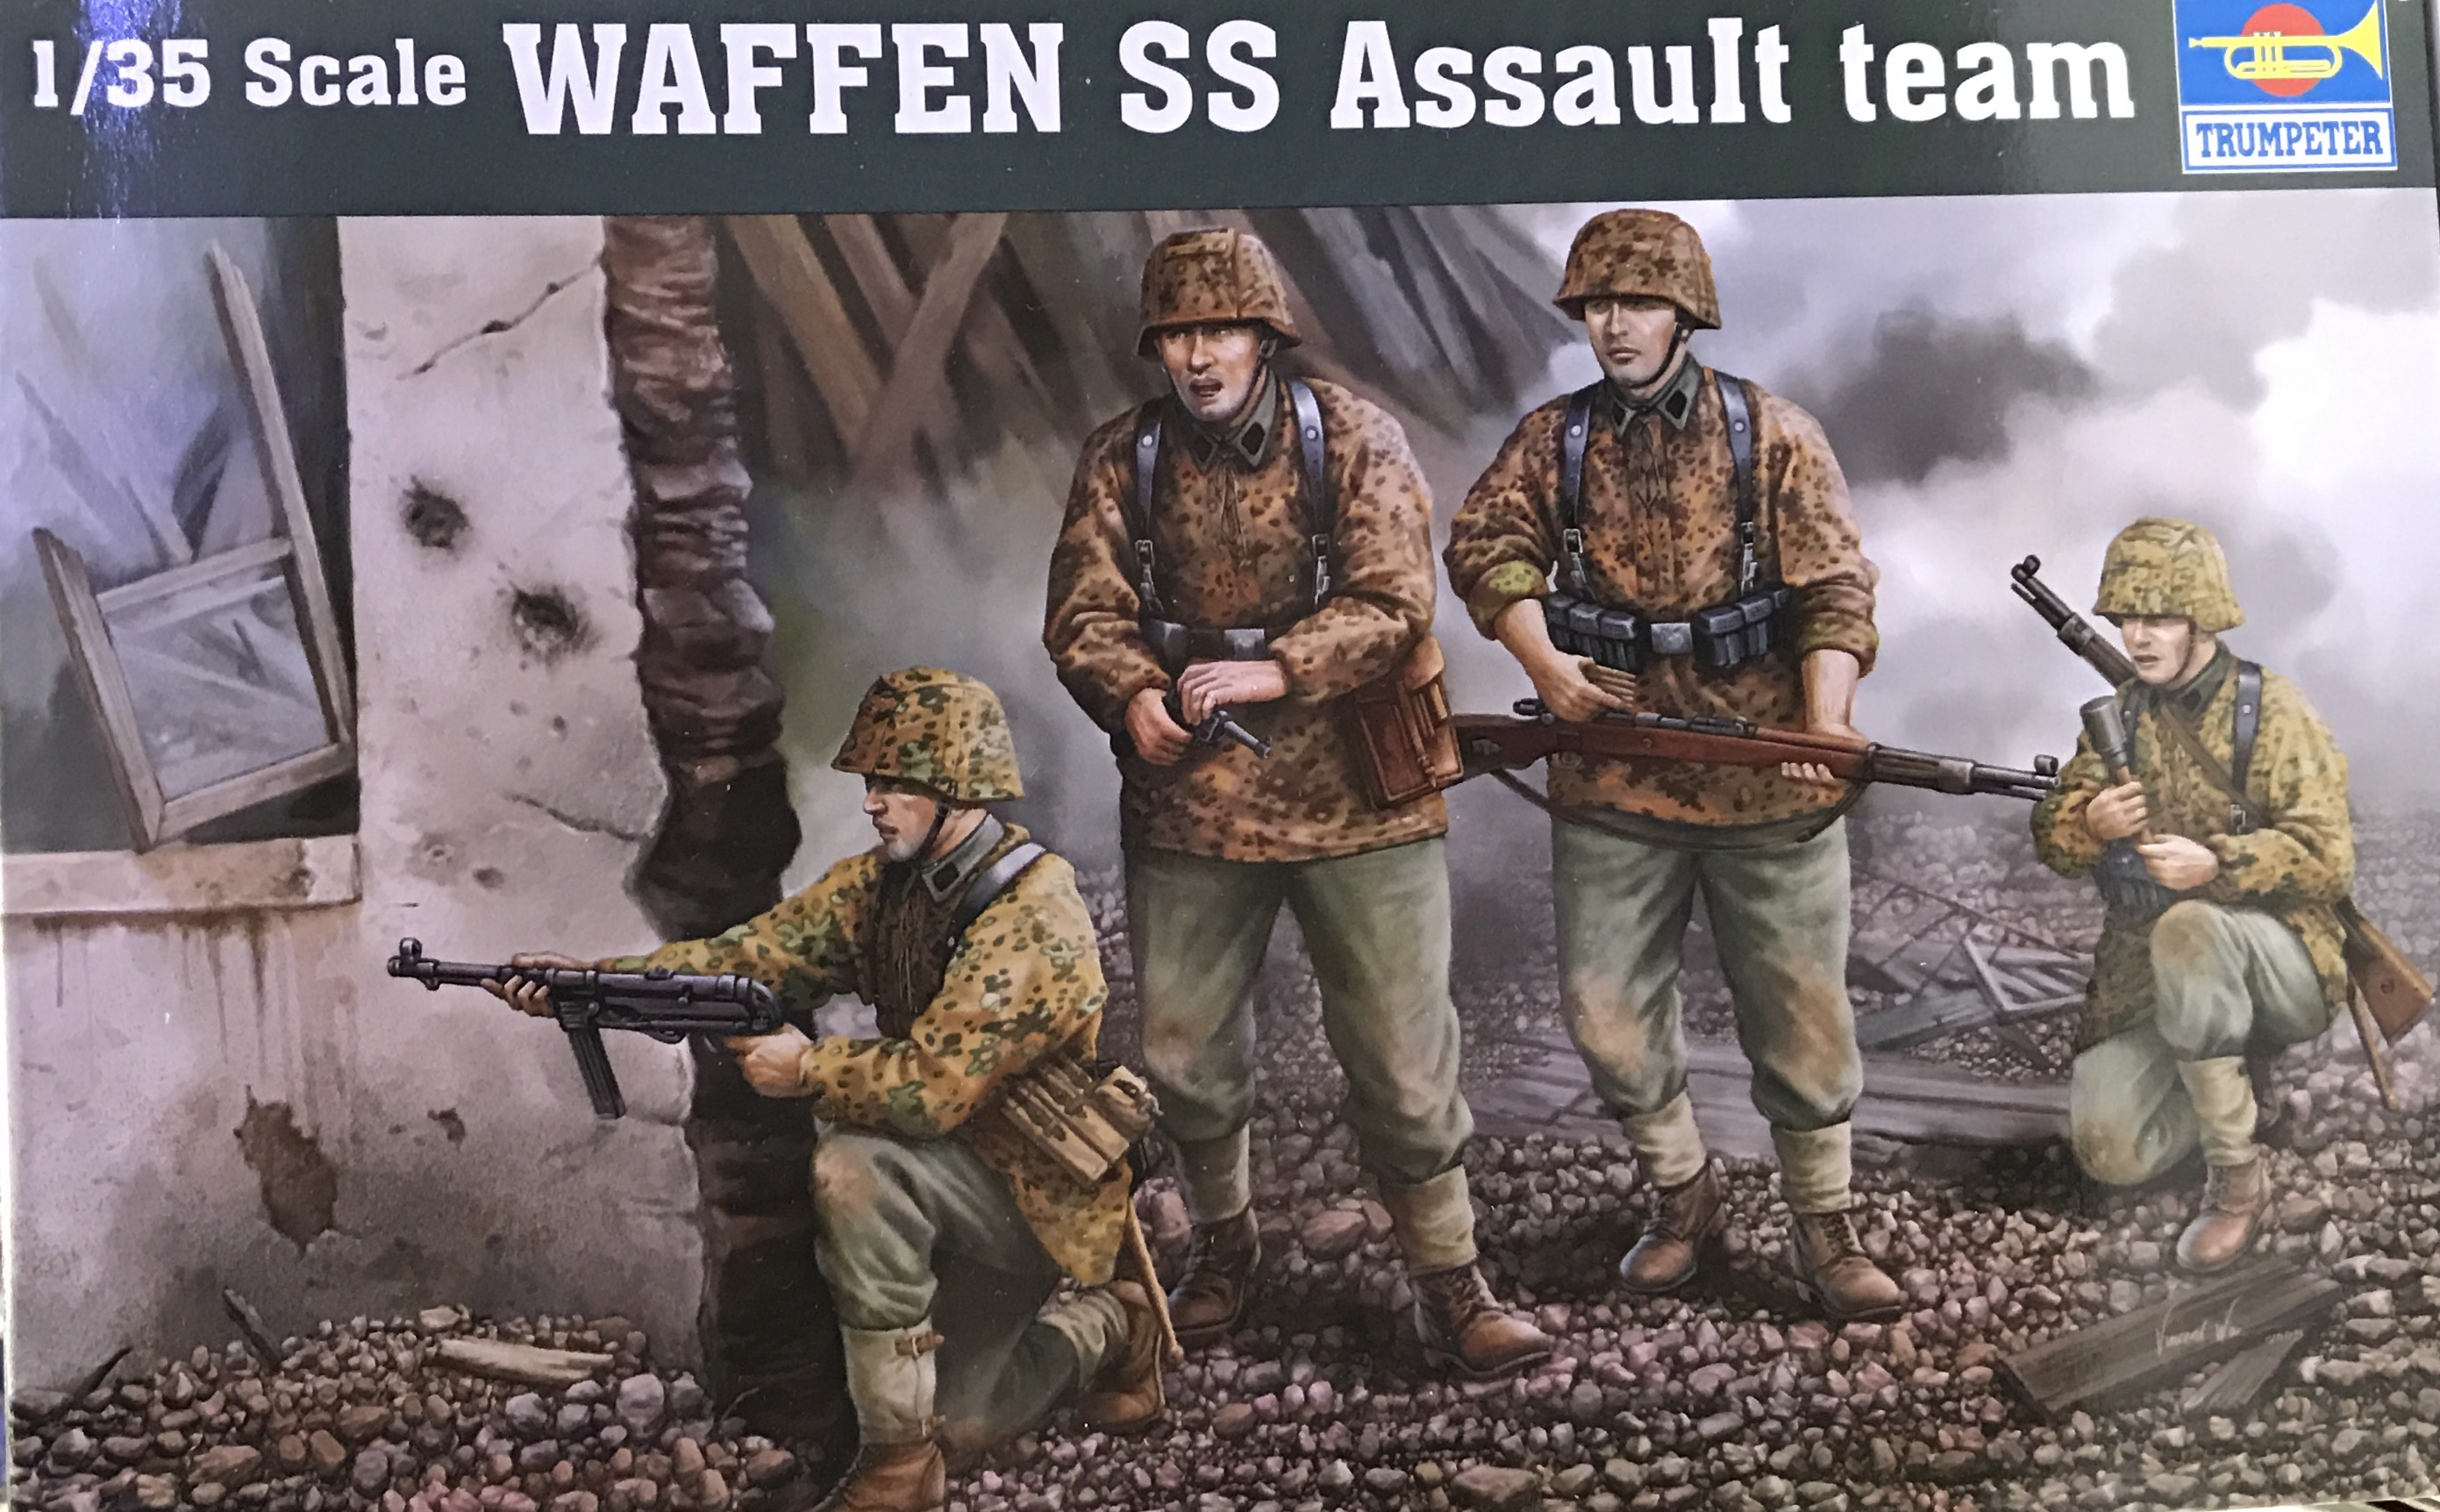 1/35 WAFFEN SS Assault team